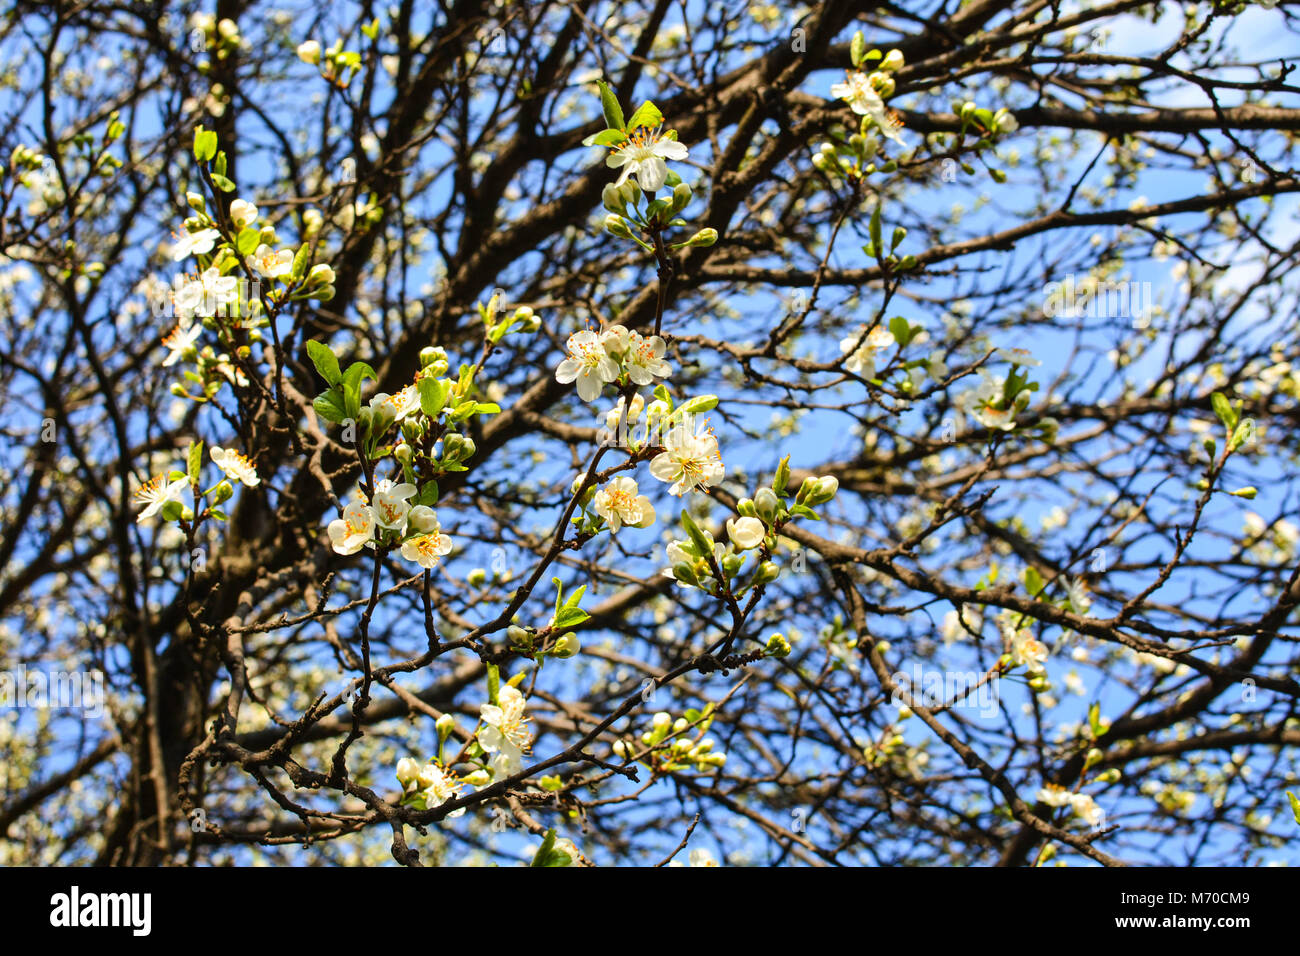 Apple tree spring blooms in soft background of branches and sky apple tree spring blooms in soft background of branches and sky early spring white flowers natural background mightylinksfo